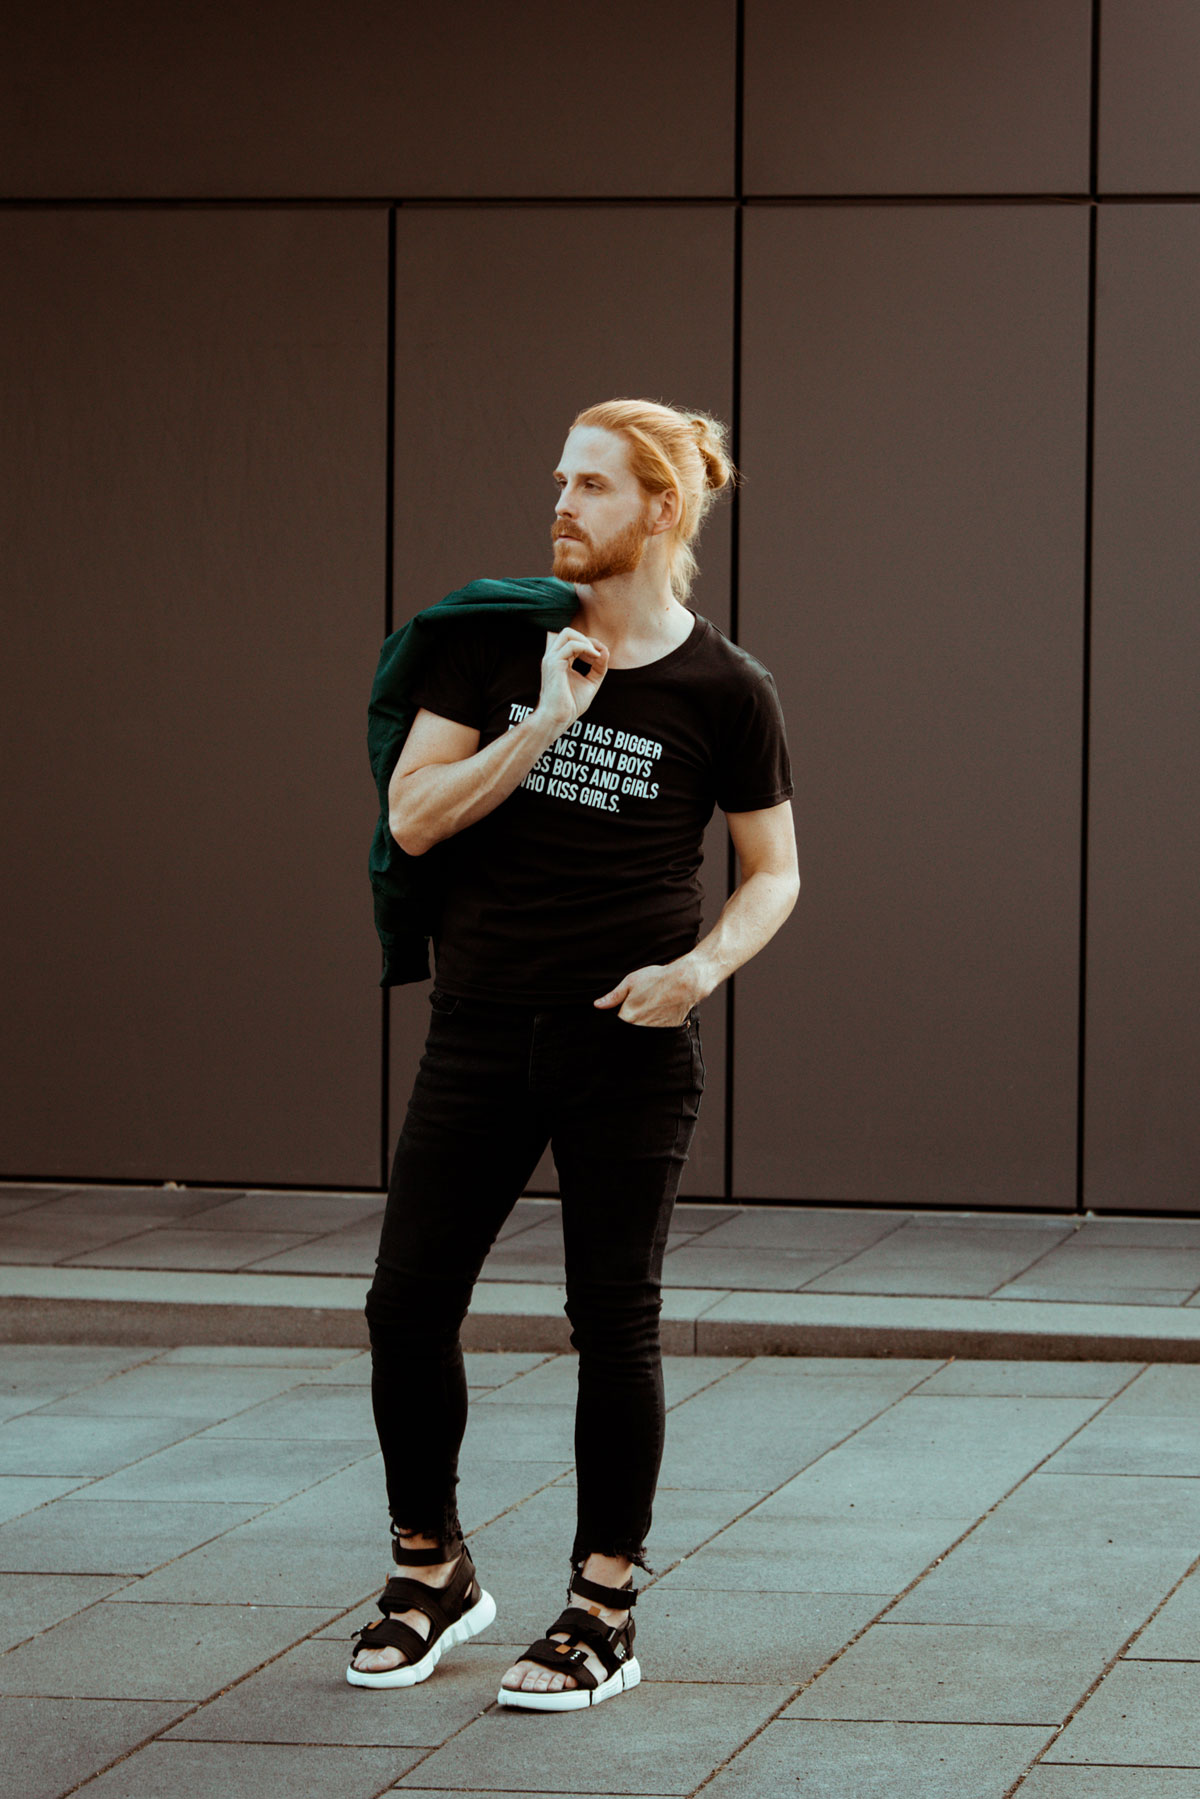 Malefashion-Streetstyle-Statement-Shirt-Gayboy-Ginger-Jeans